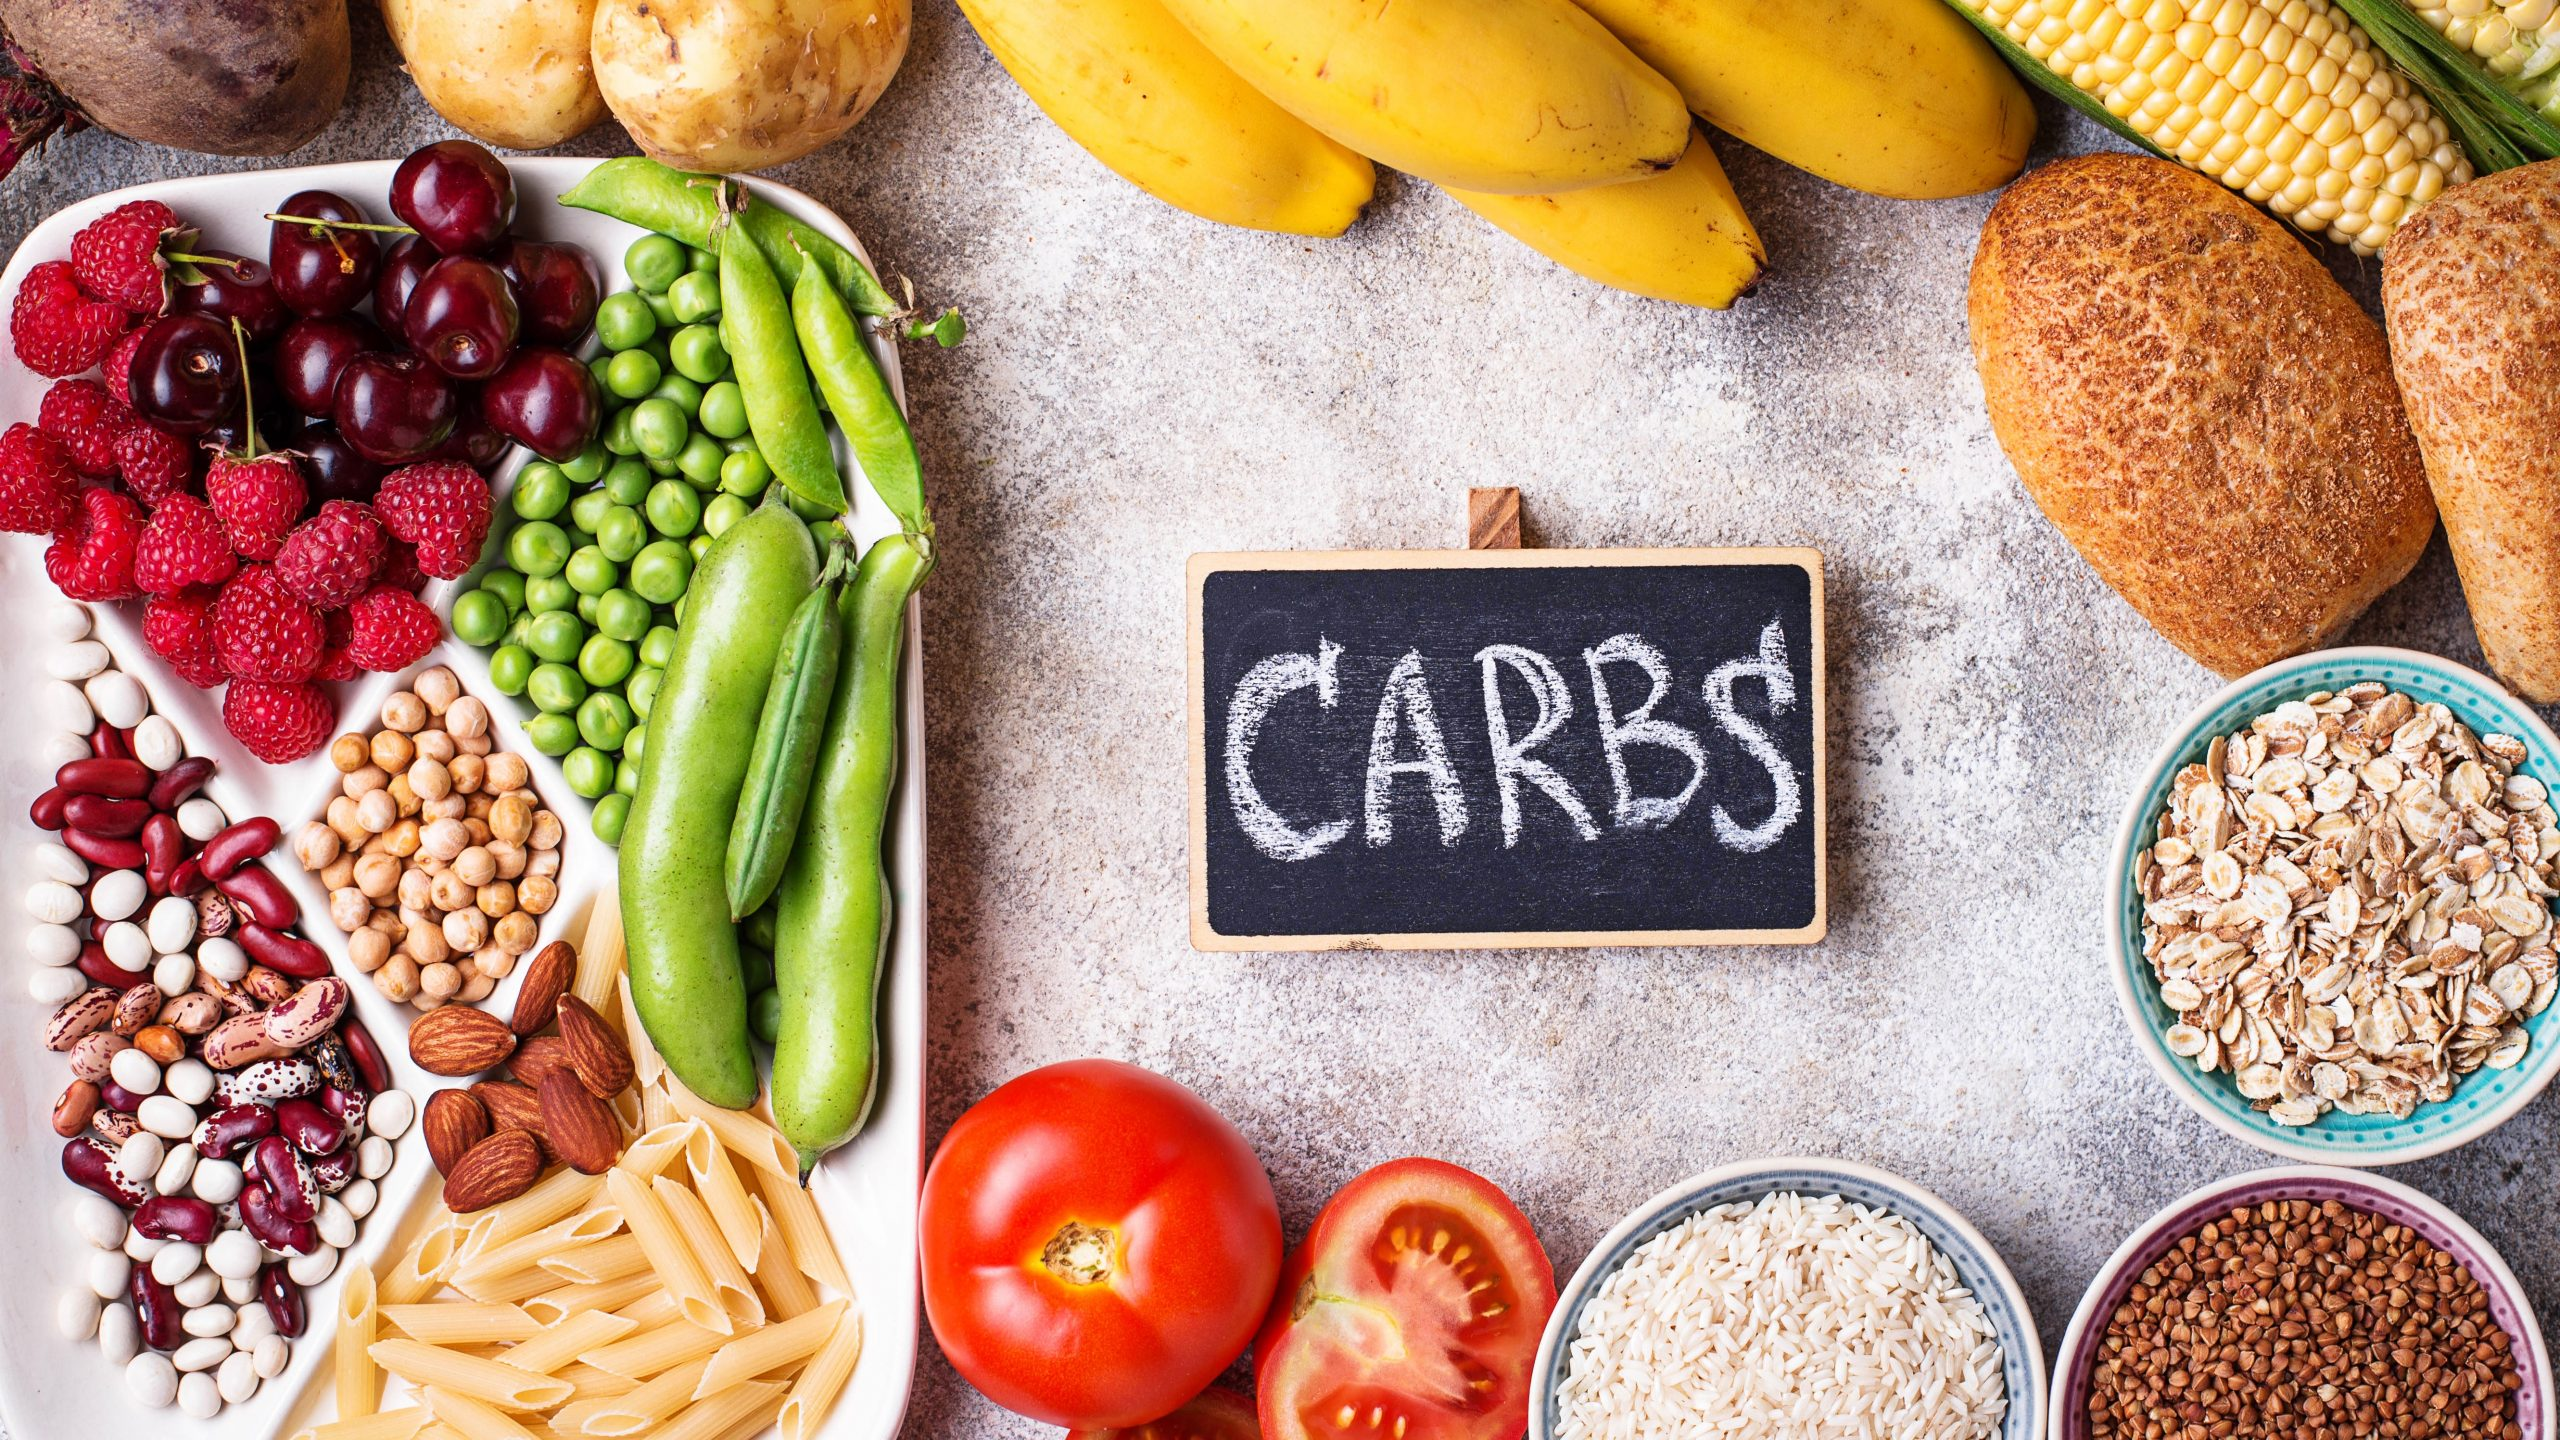 What are carbohydrates - Food sources of carbohydrates. Cereals, beans, fruits, vegetables berries nuts and bread.